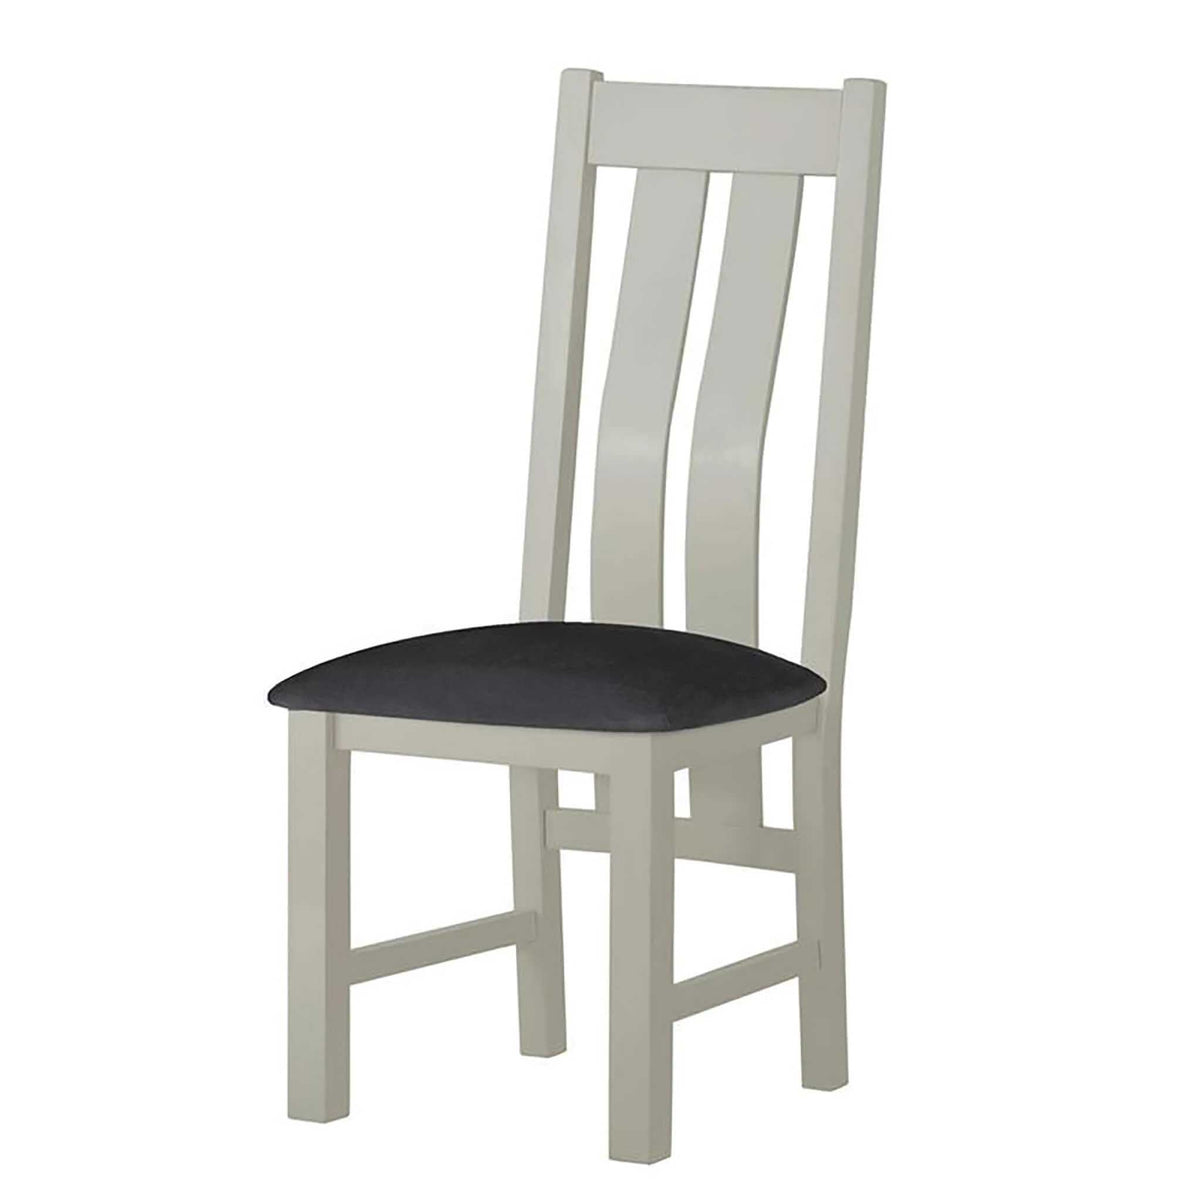 The Padstow Grey Wooden Dining Chair - Part of Dining Set